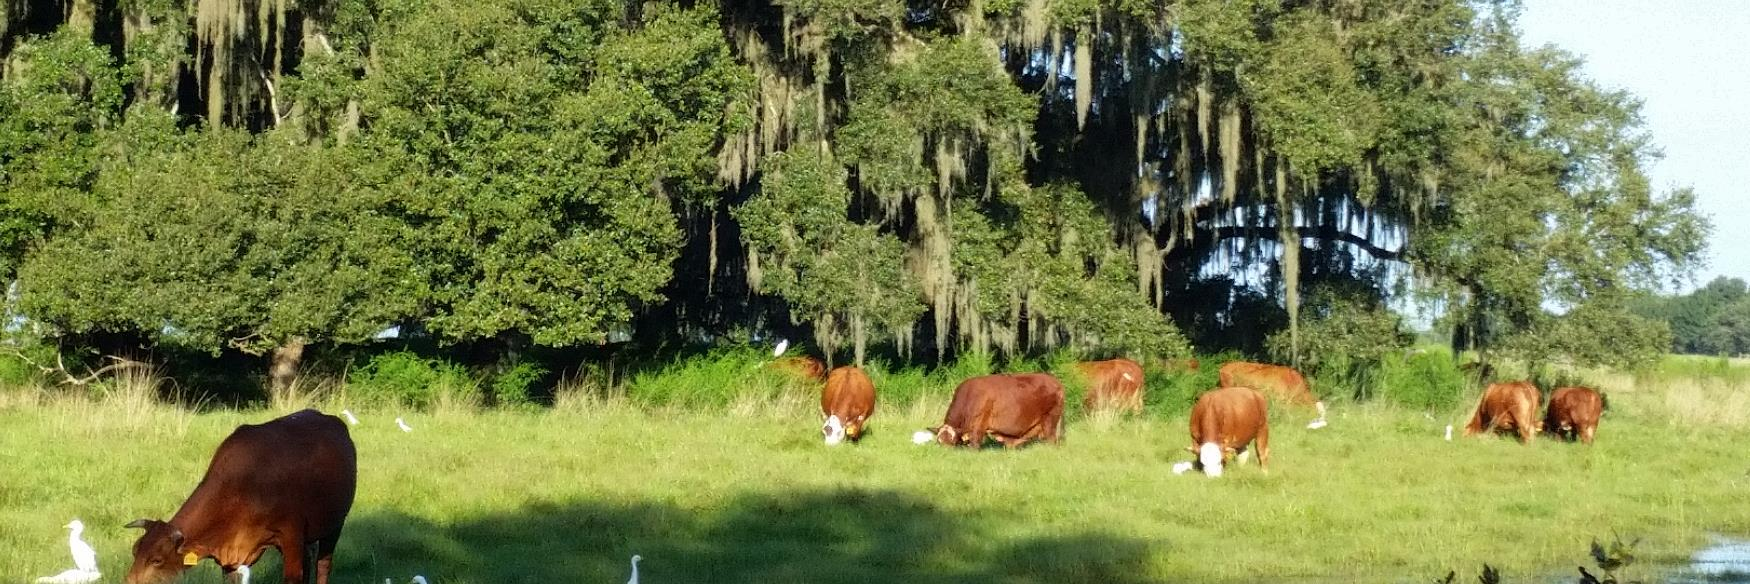 Here is another online opportunity offered by the UF/IFAS Central FL Livestock Agent. It is a three week series on… https://t.co/eltl0AvRlE